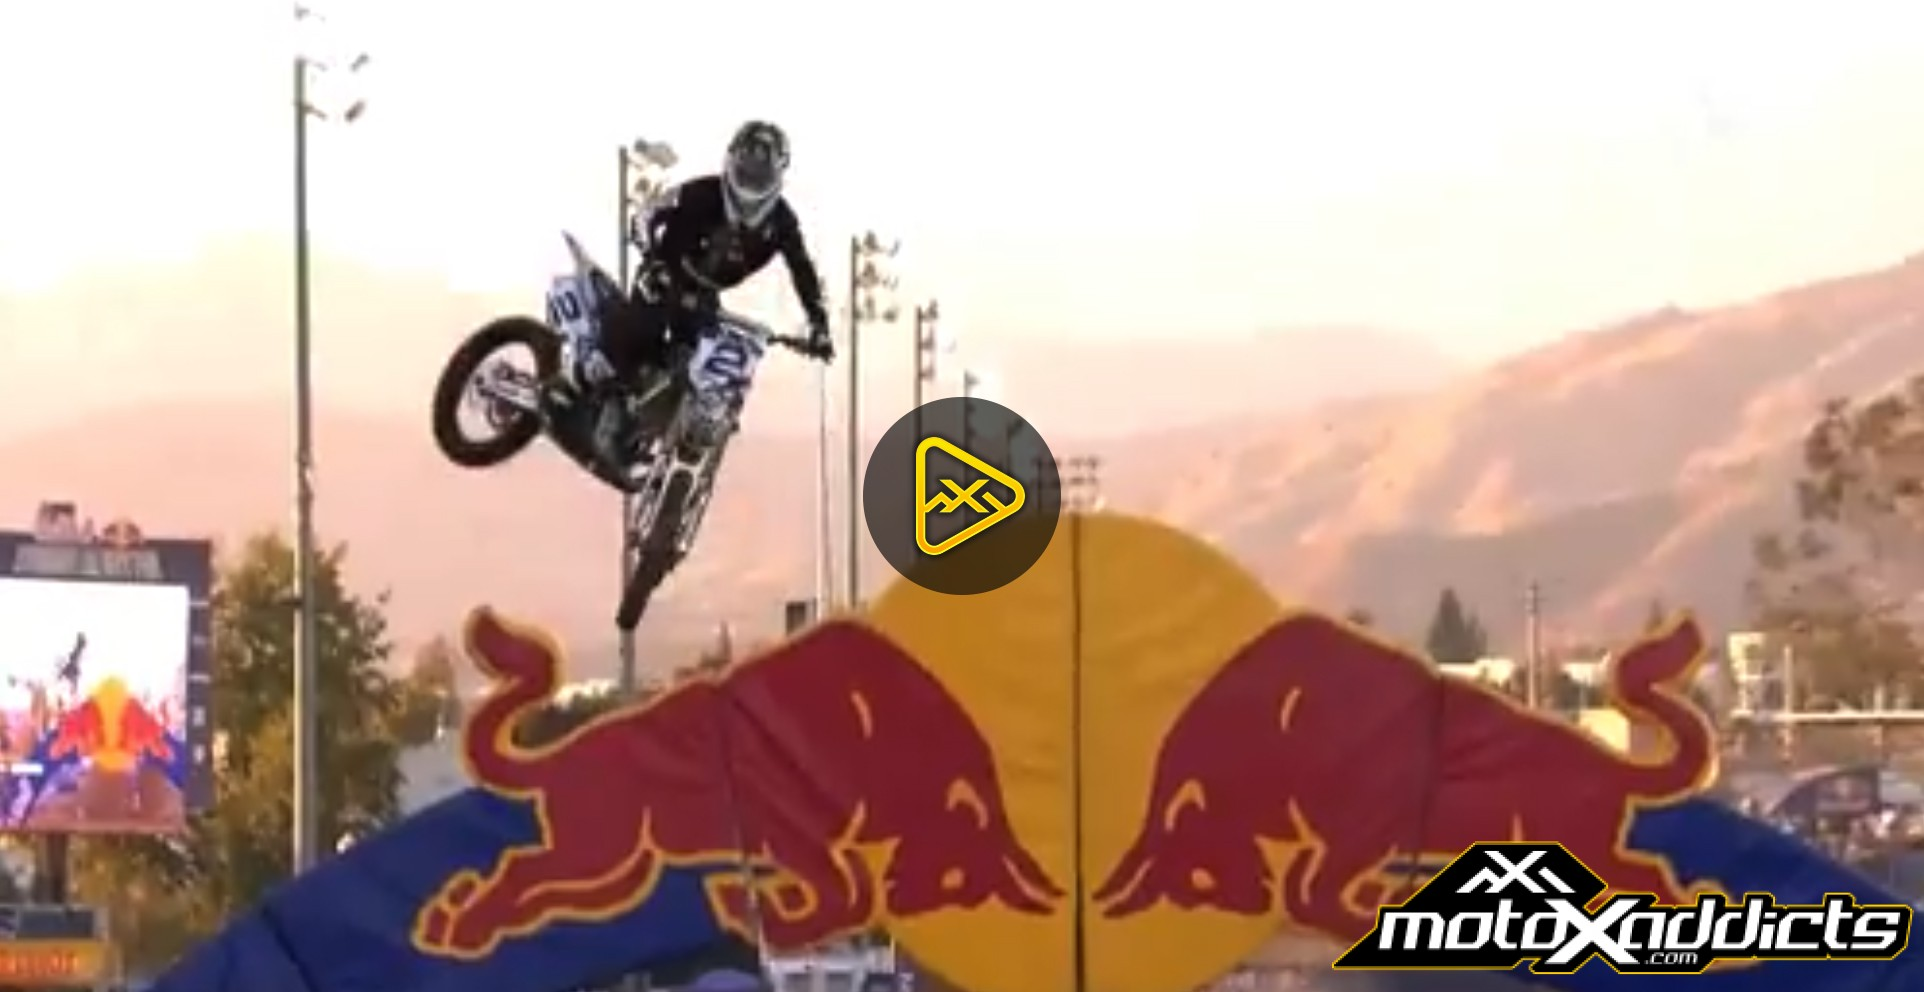 Archive – Watch 2017 Red Bull Straight Rhythm in Full